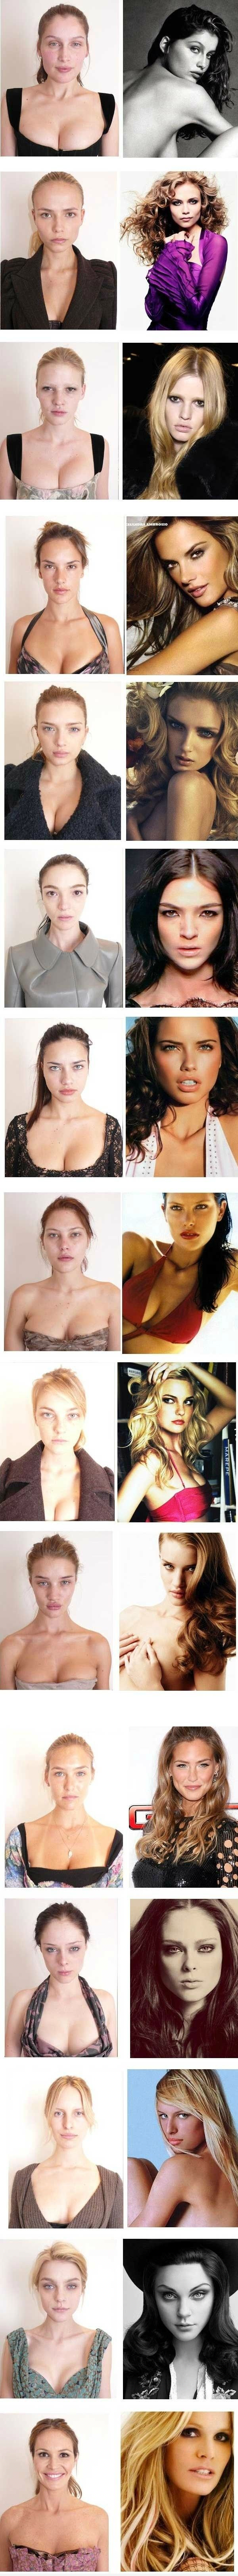 Models without make-up and with...